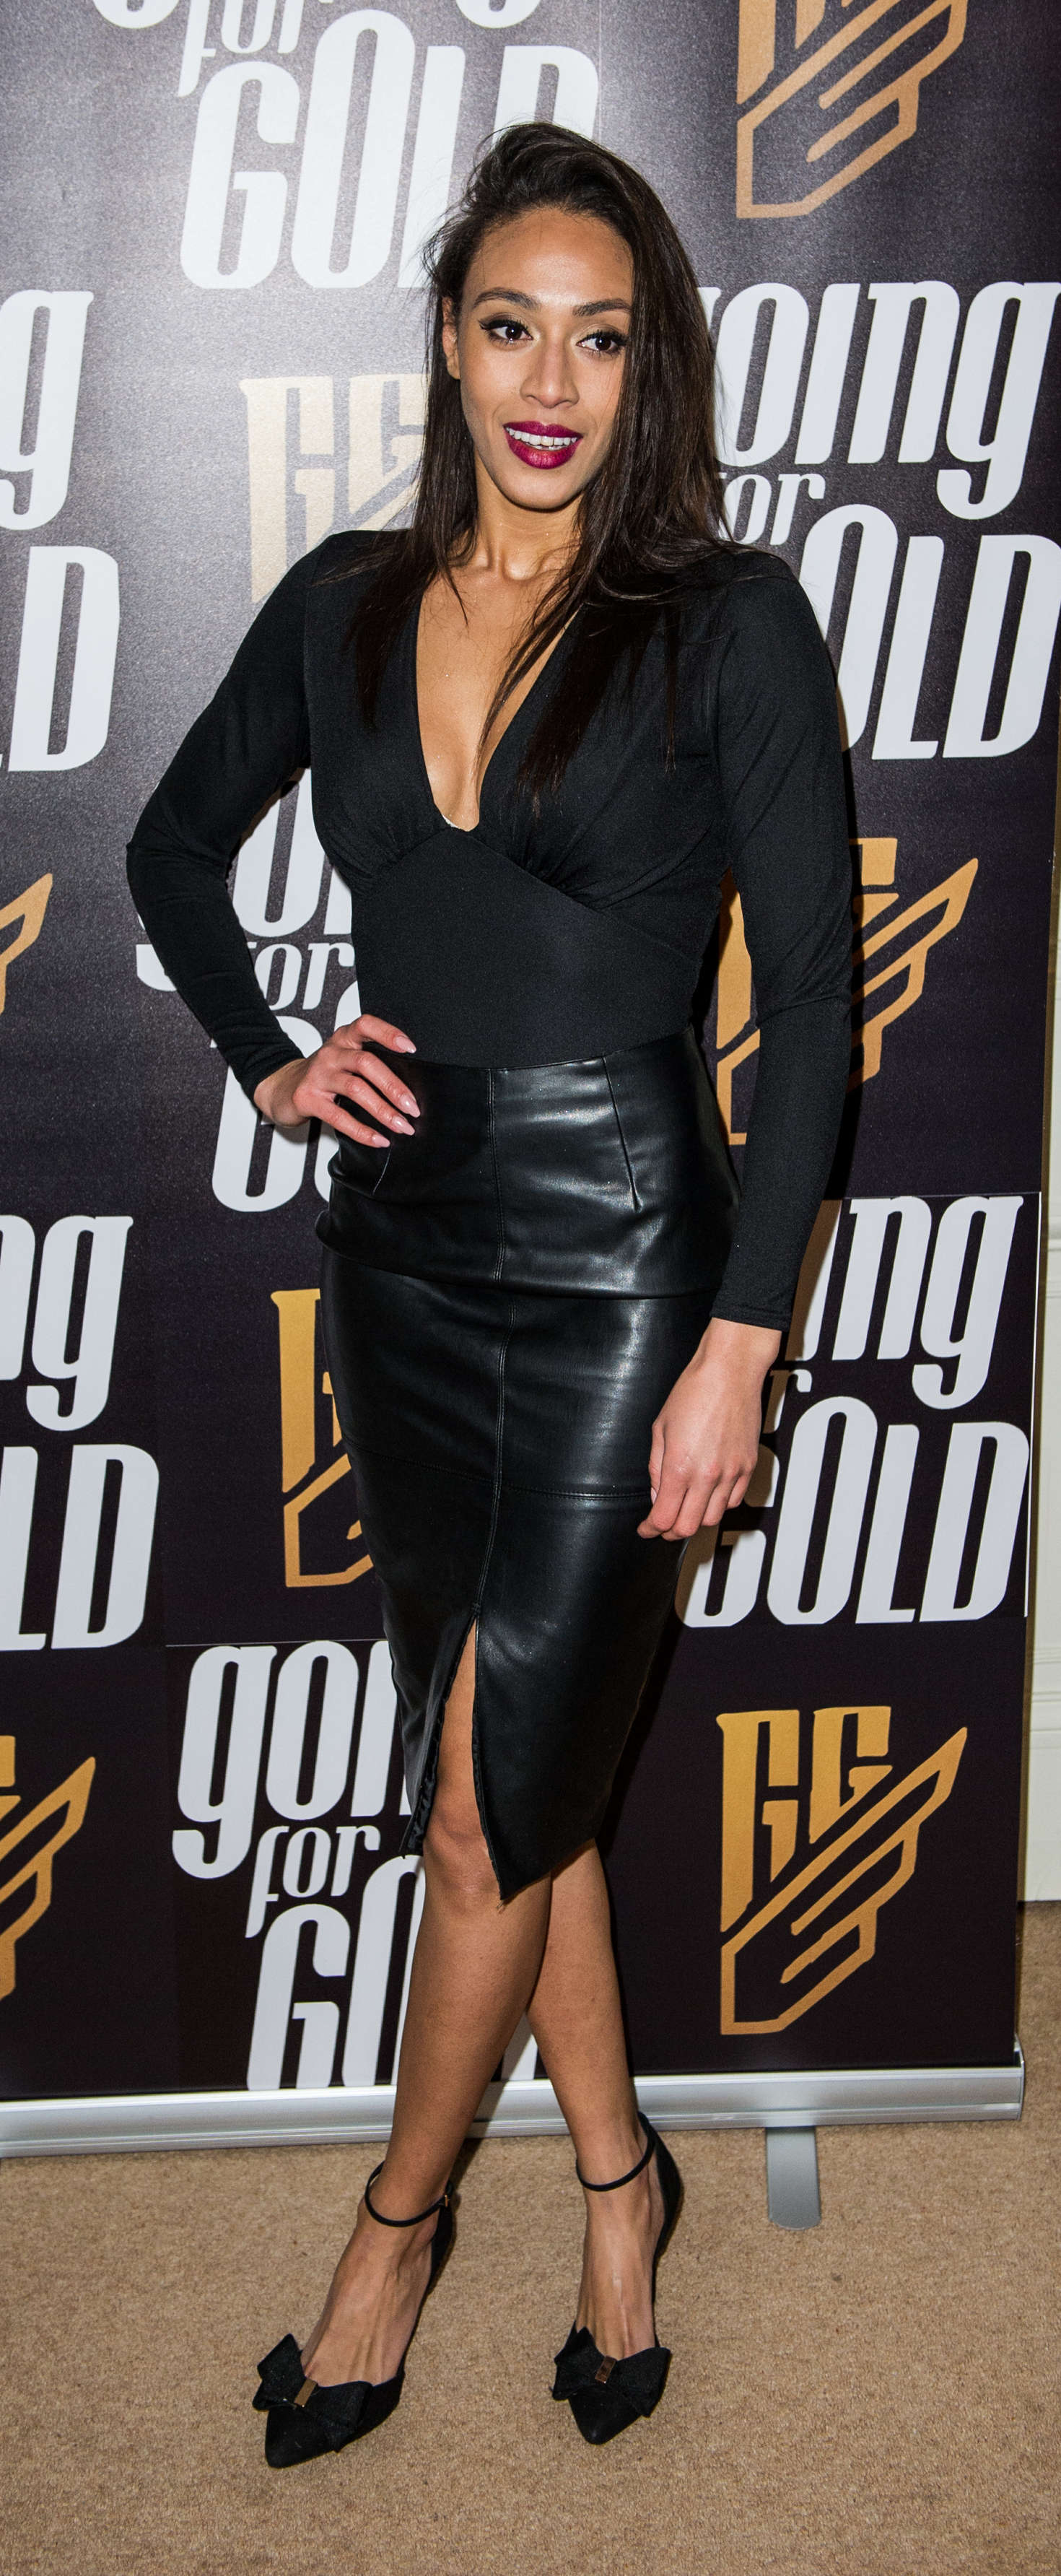 Rachel Christie – Going For Gold Magazine Launch Party in London_01